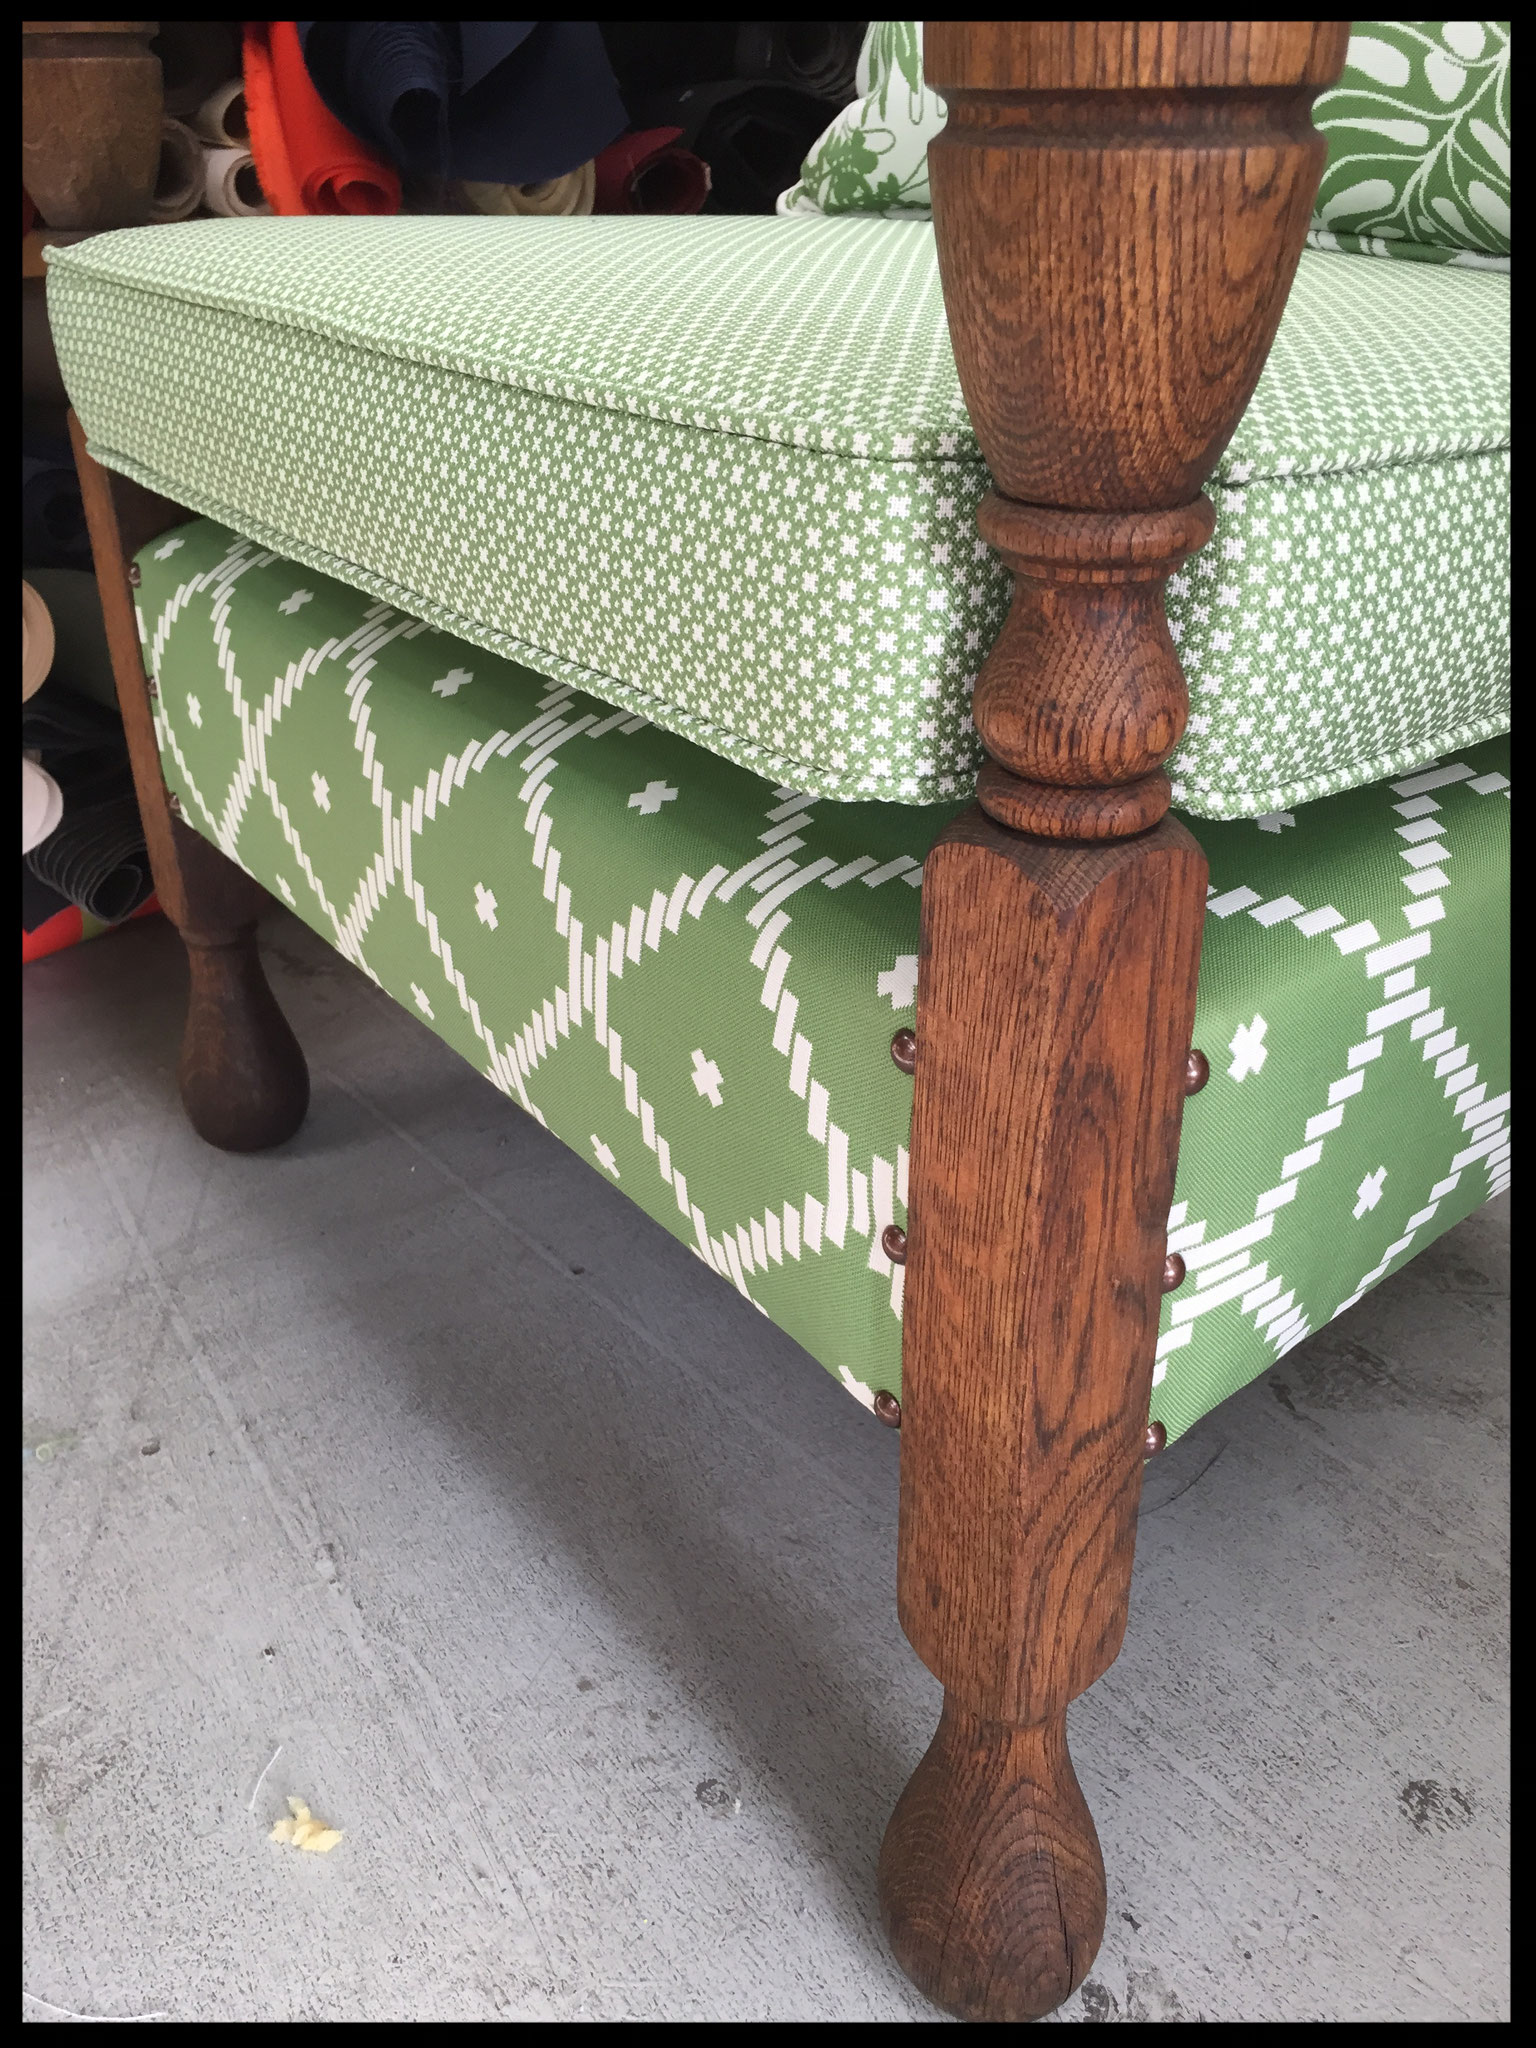 Outdoor Fabric on a Vintage Chair